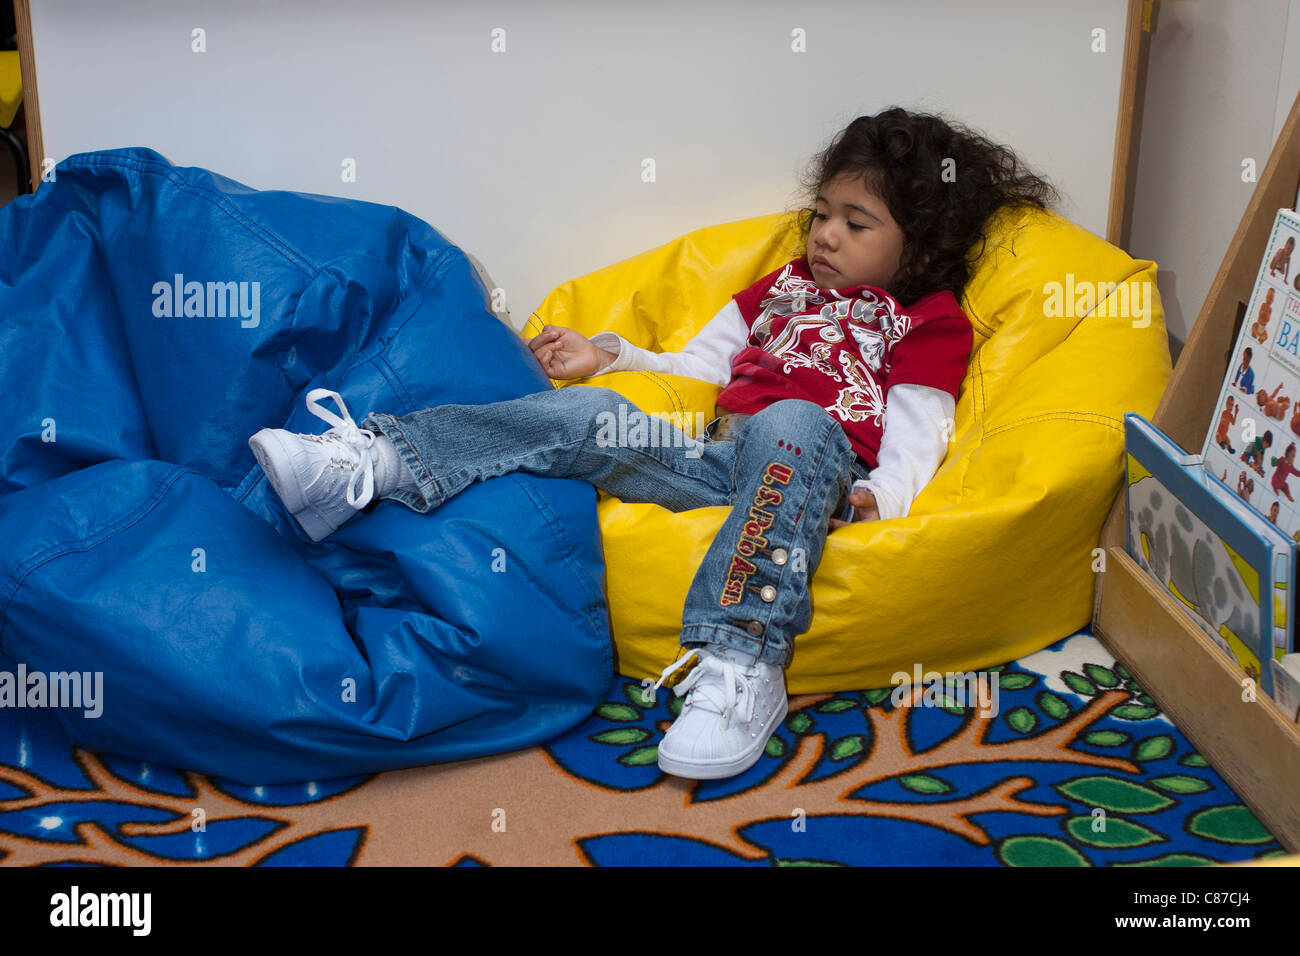 Preschool Classroom 4 Year Old Girl Relaxing On A Beanbag Chair During School